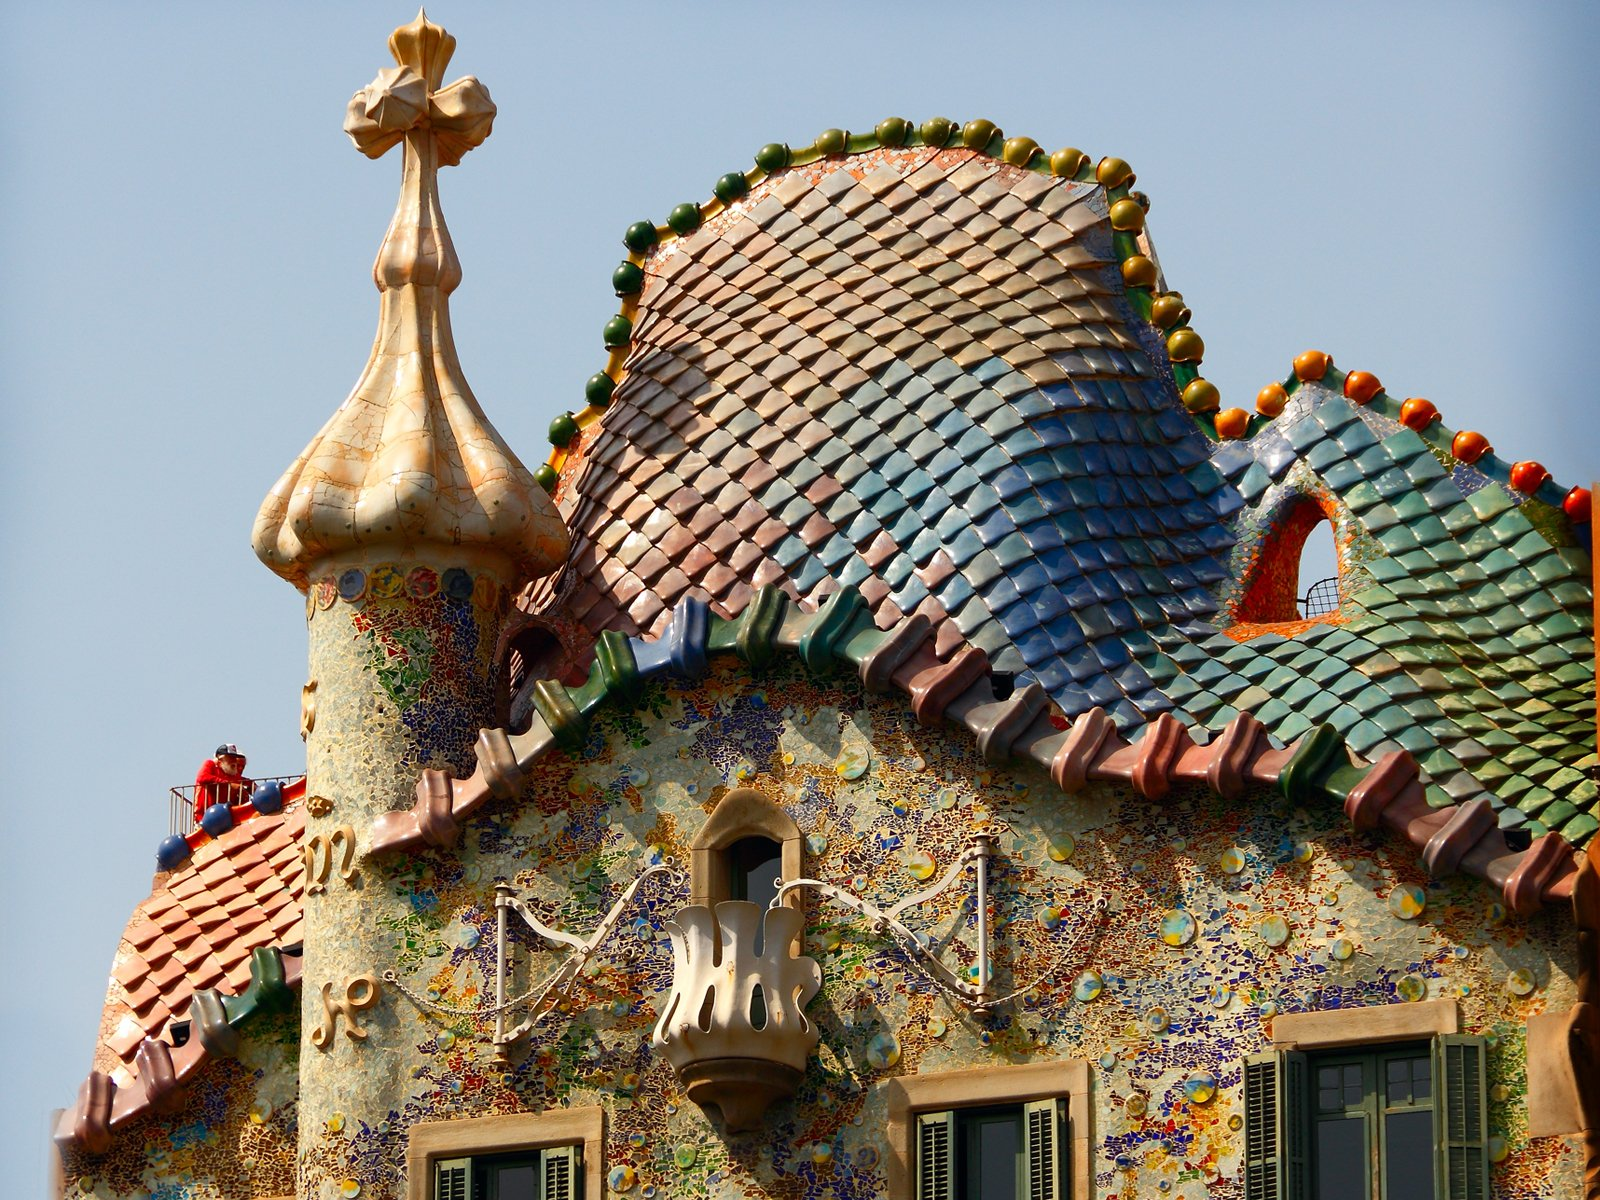 The Ceiling of Casa Batllo is the perfect combination of reality and fantasy